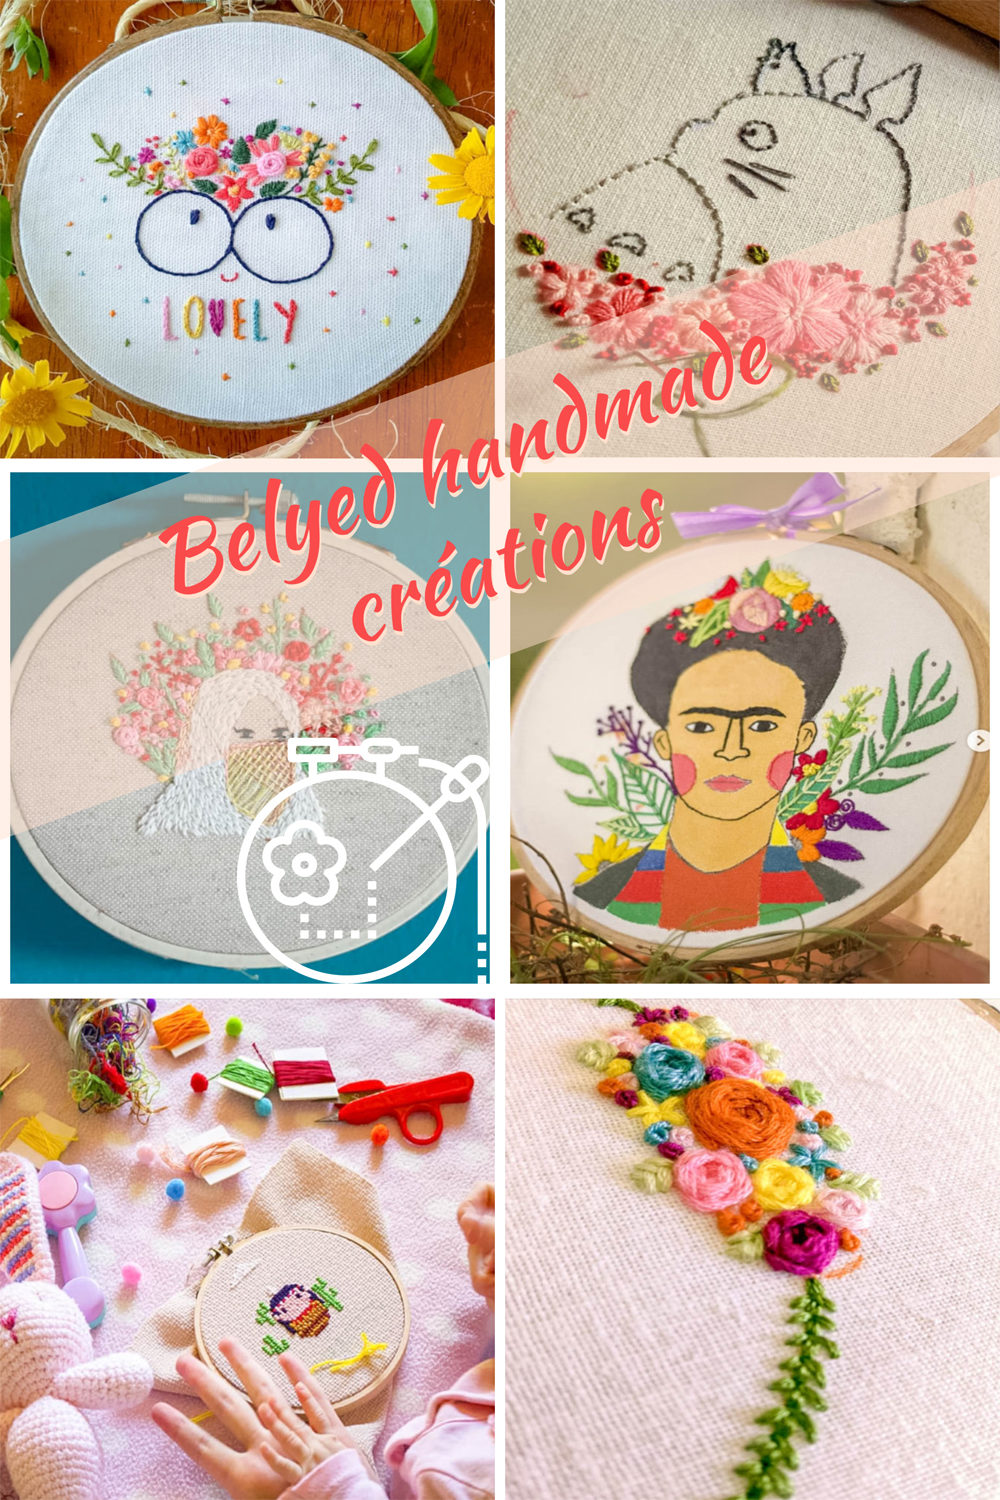 Belyed handmade créations